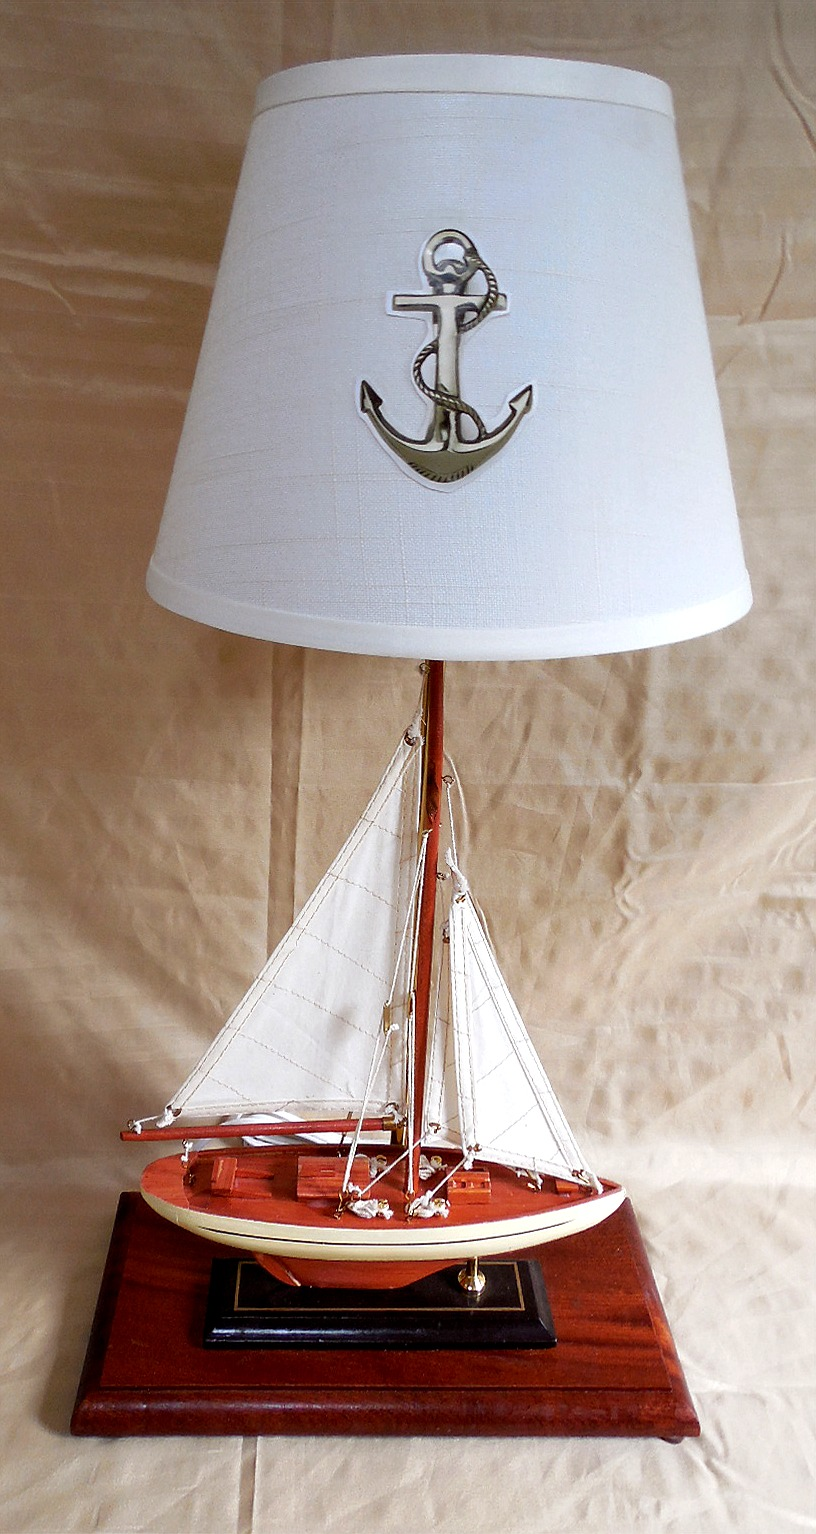 Sailboat Table Lamp : Robin s dockside shop sailboat table lamp